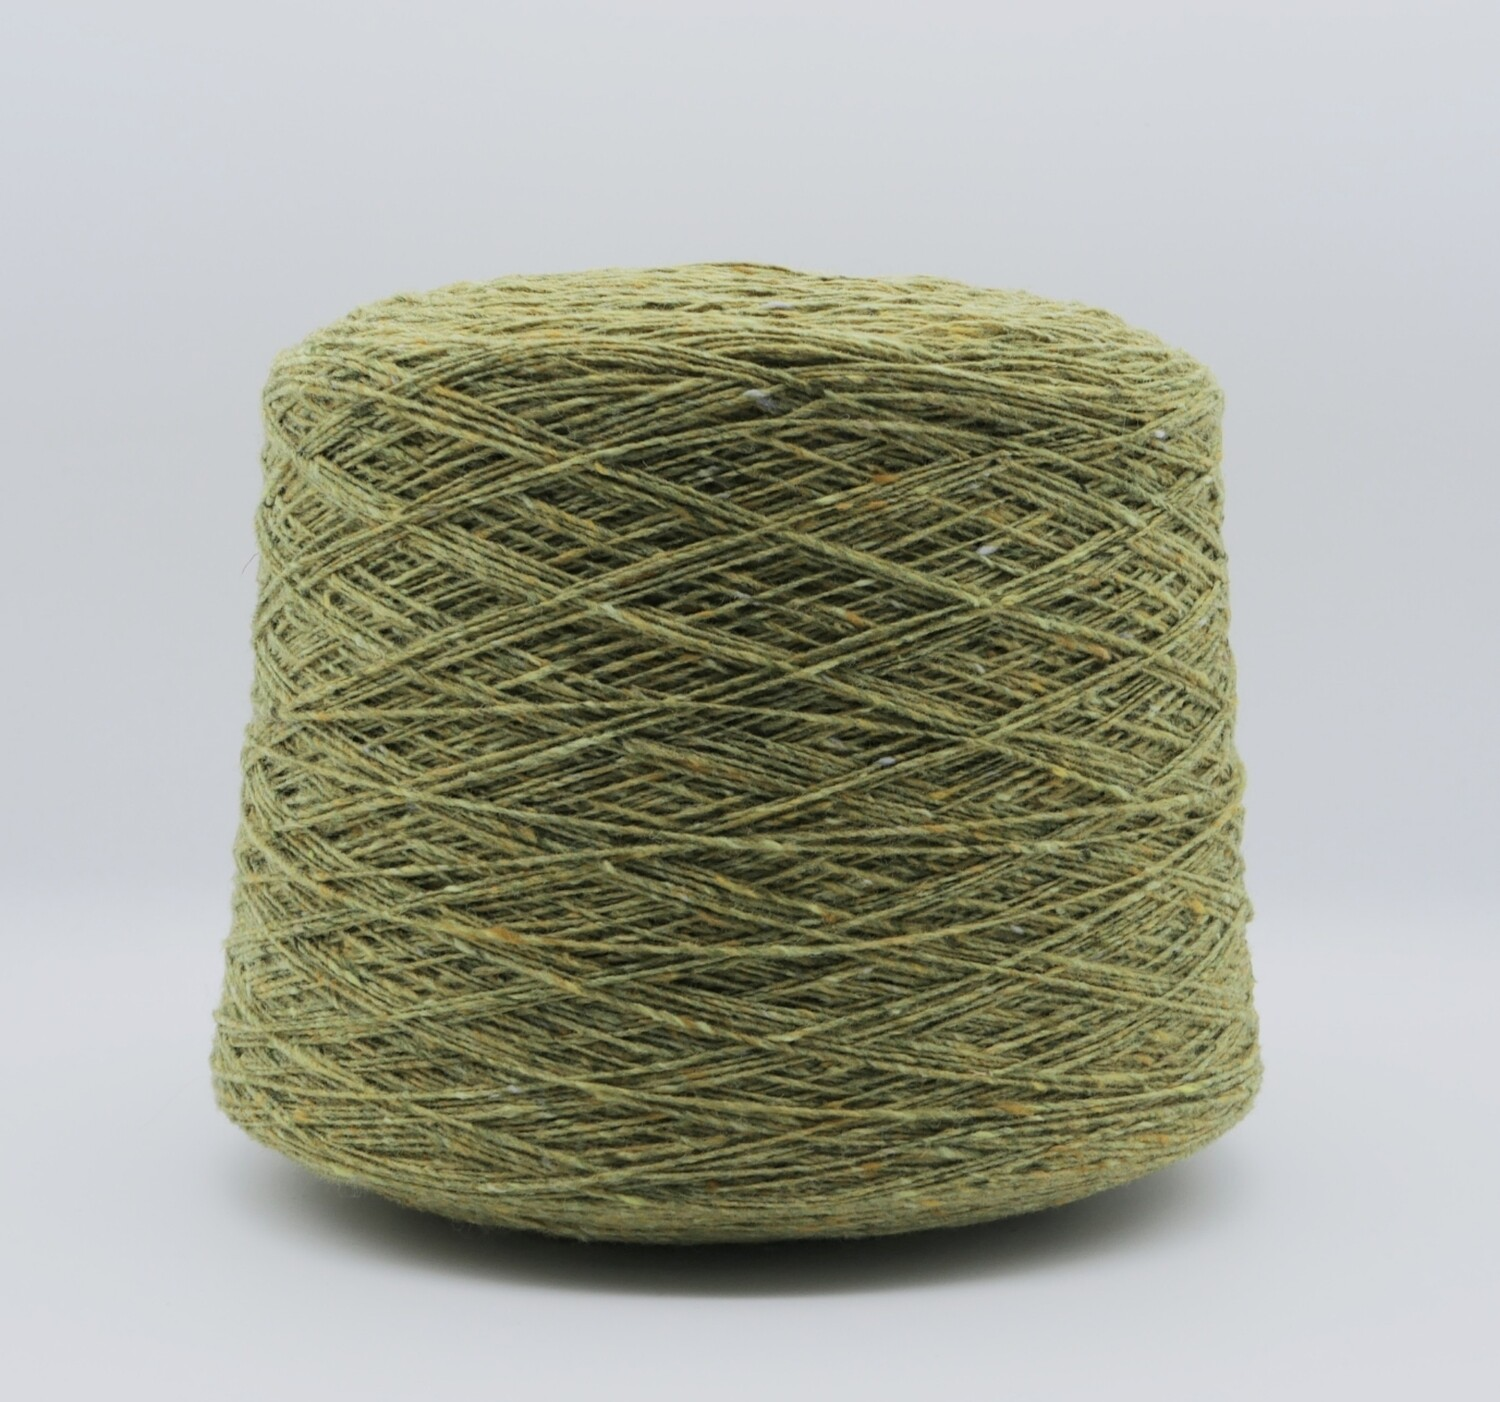 Soft Donegal tweed  oдинарный, код 5581, 50 гр